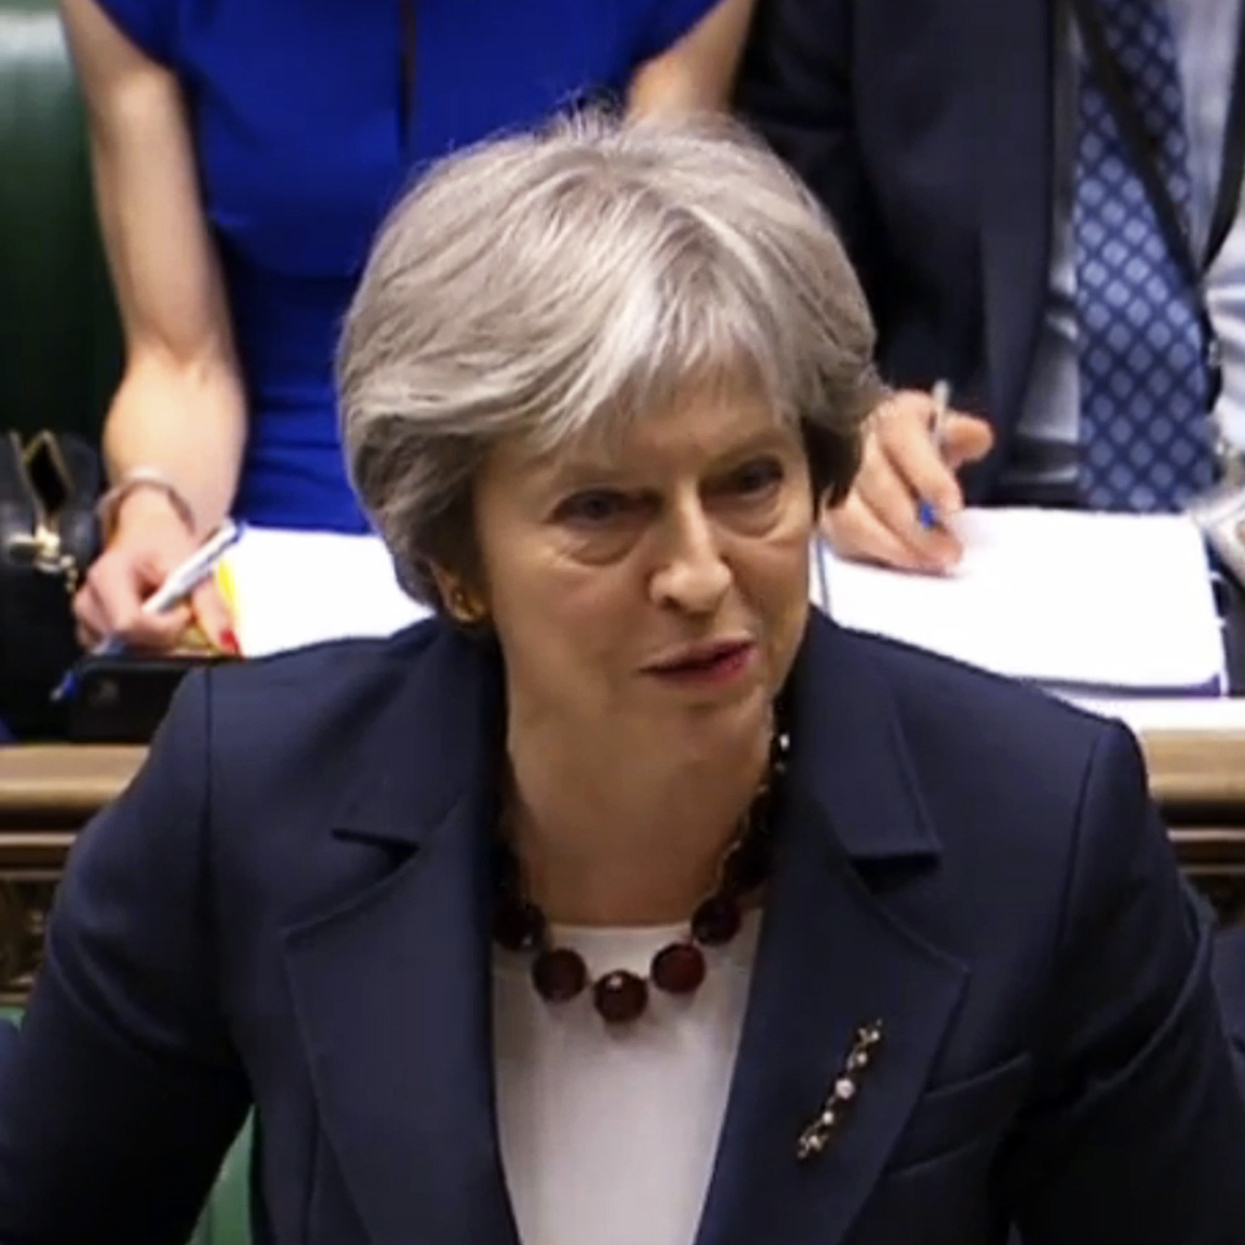 U.K. Prime Minister Theresa May has said Russia is guilty of attempted murder on British soil